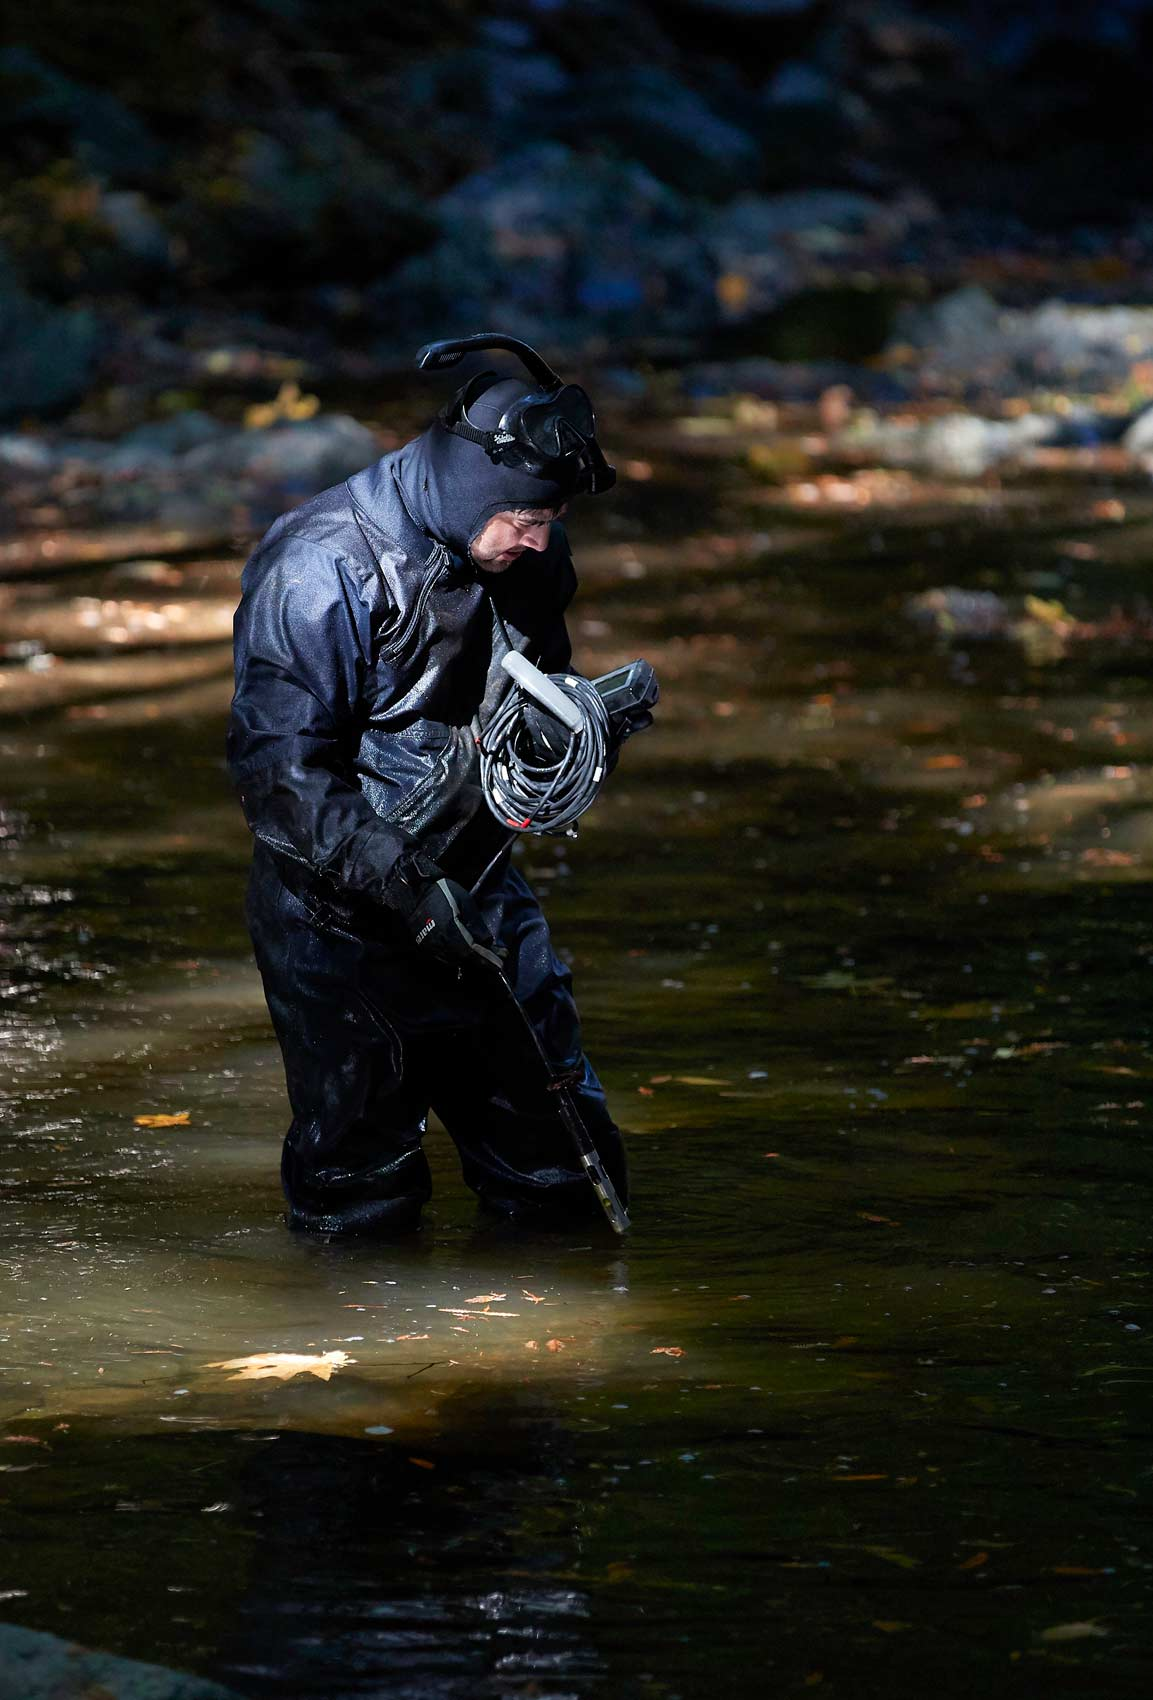 Researcher in Wetsuit Takes Oxygen Measurement in Stream